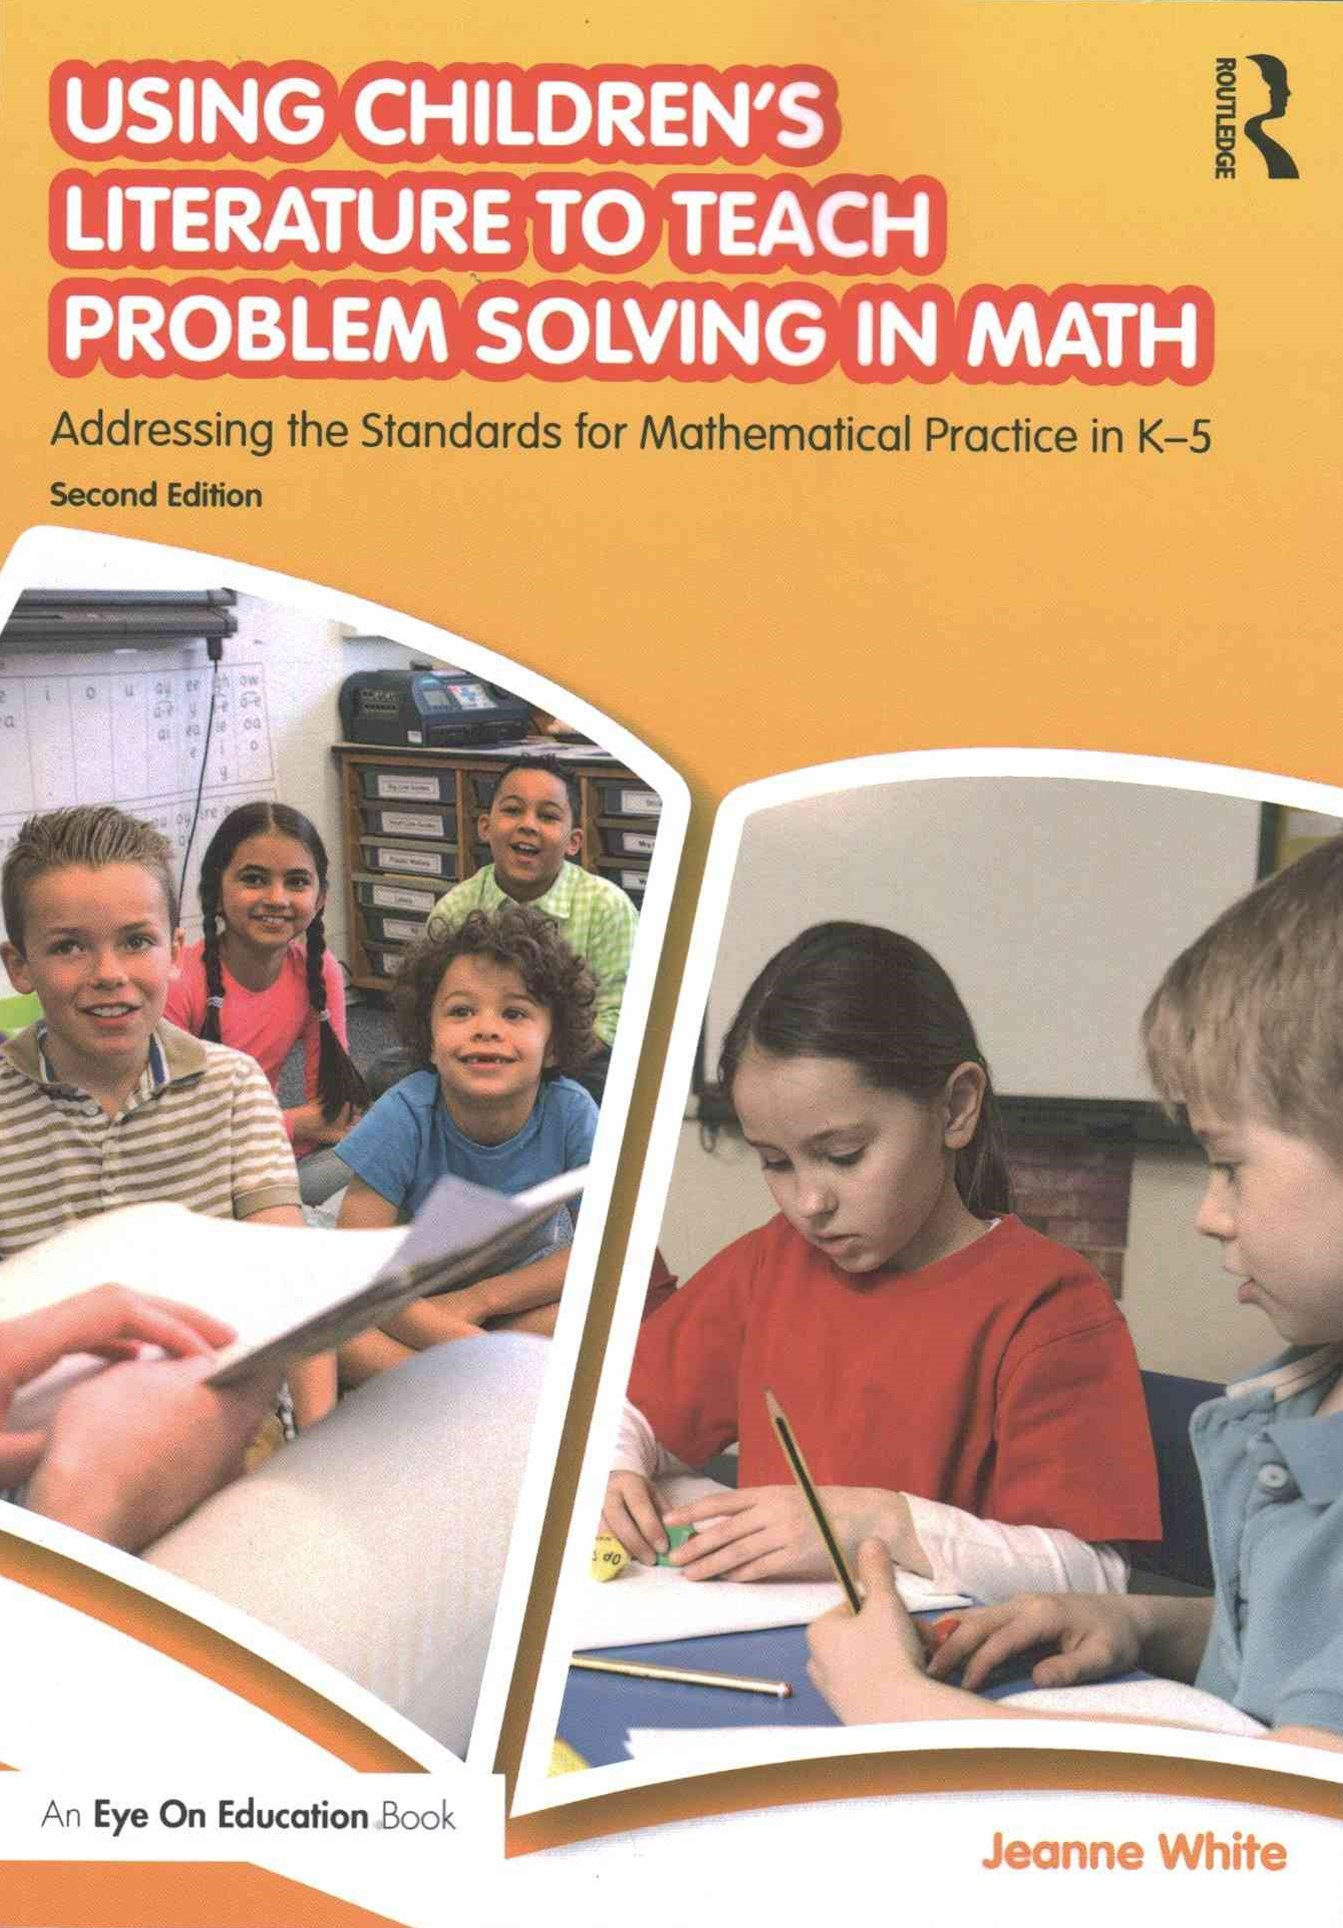 Using Children's Literature to Teach Problem Solving in Math